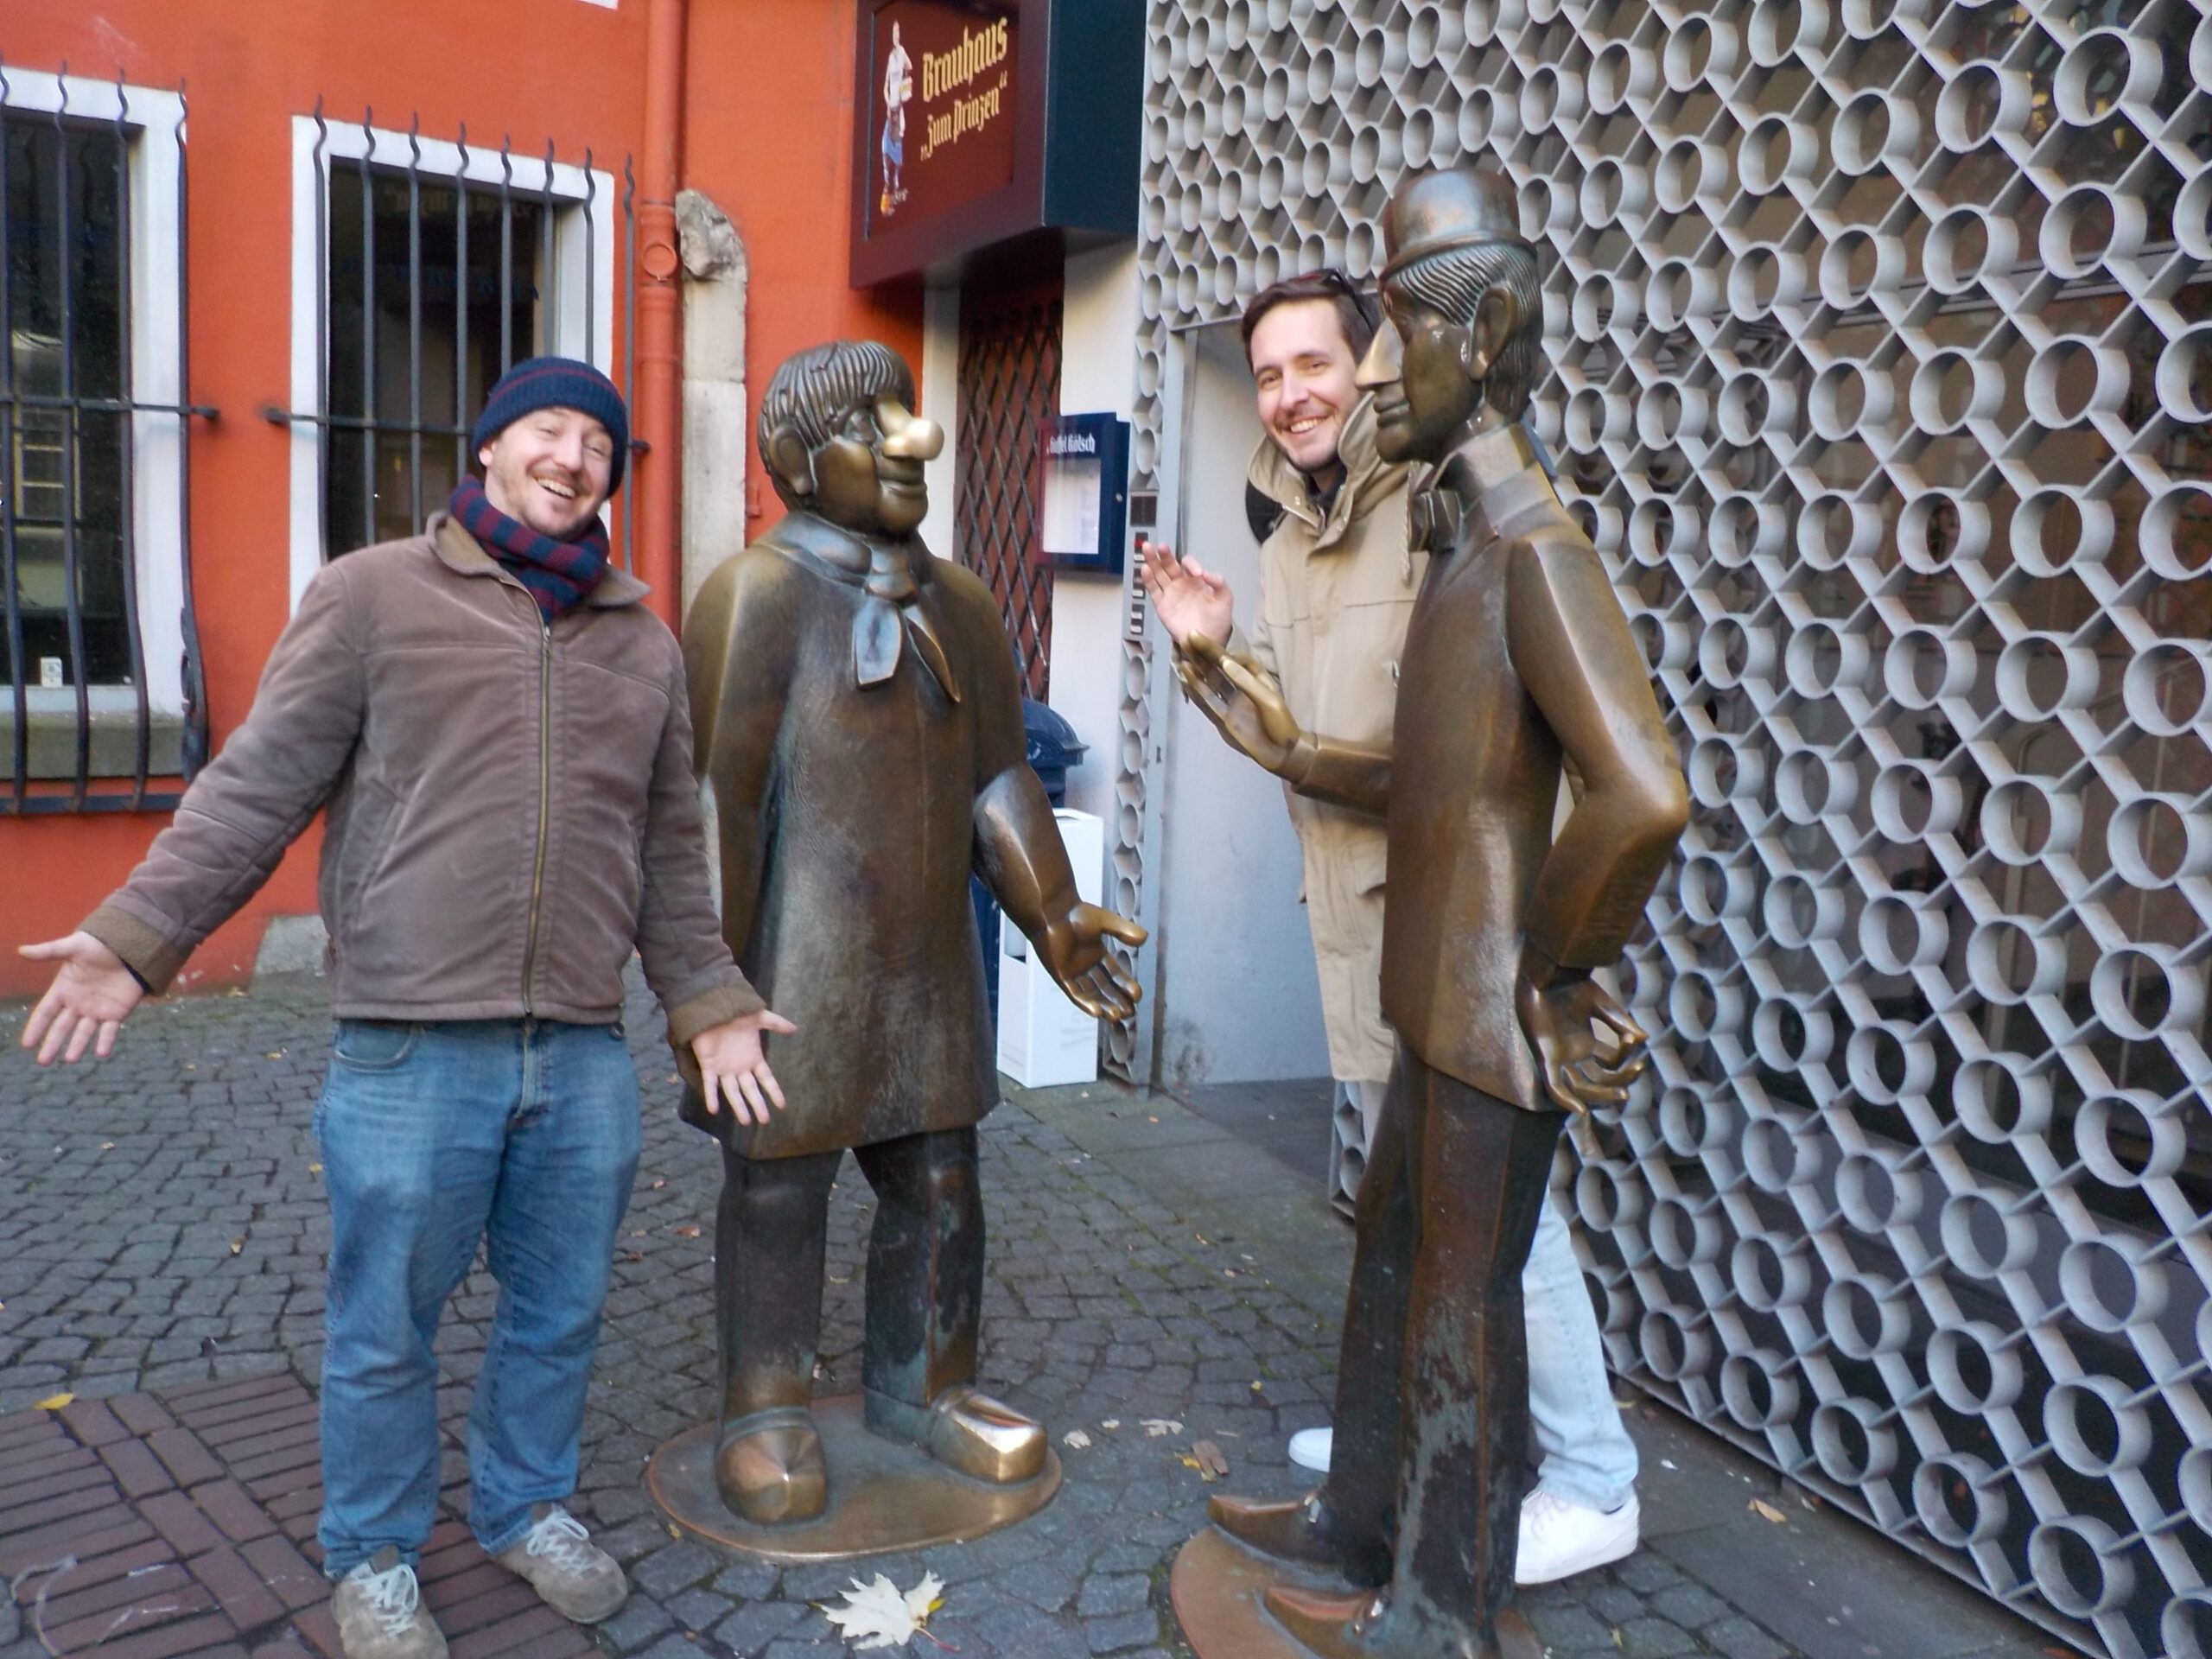 Free City Tours in Cologne: Matthias & Florian